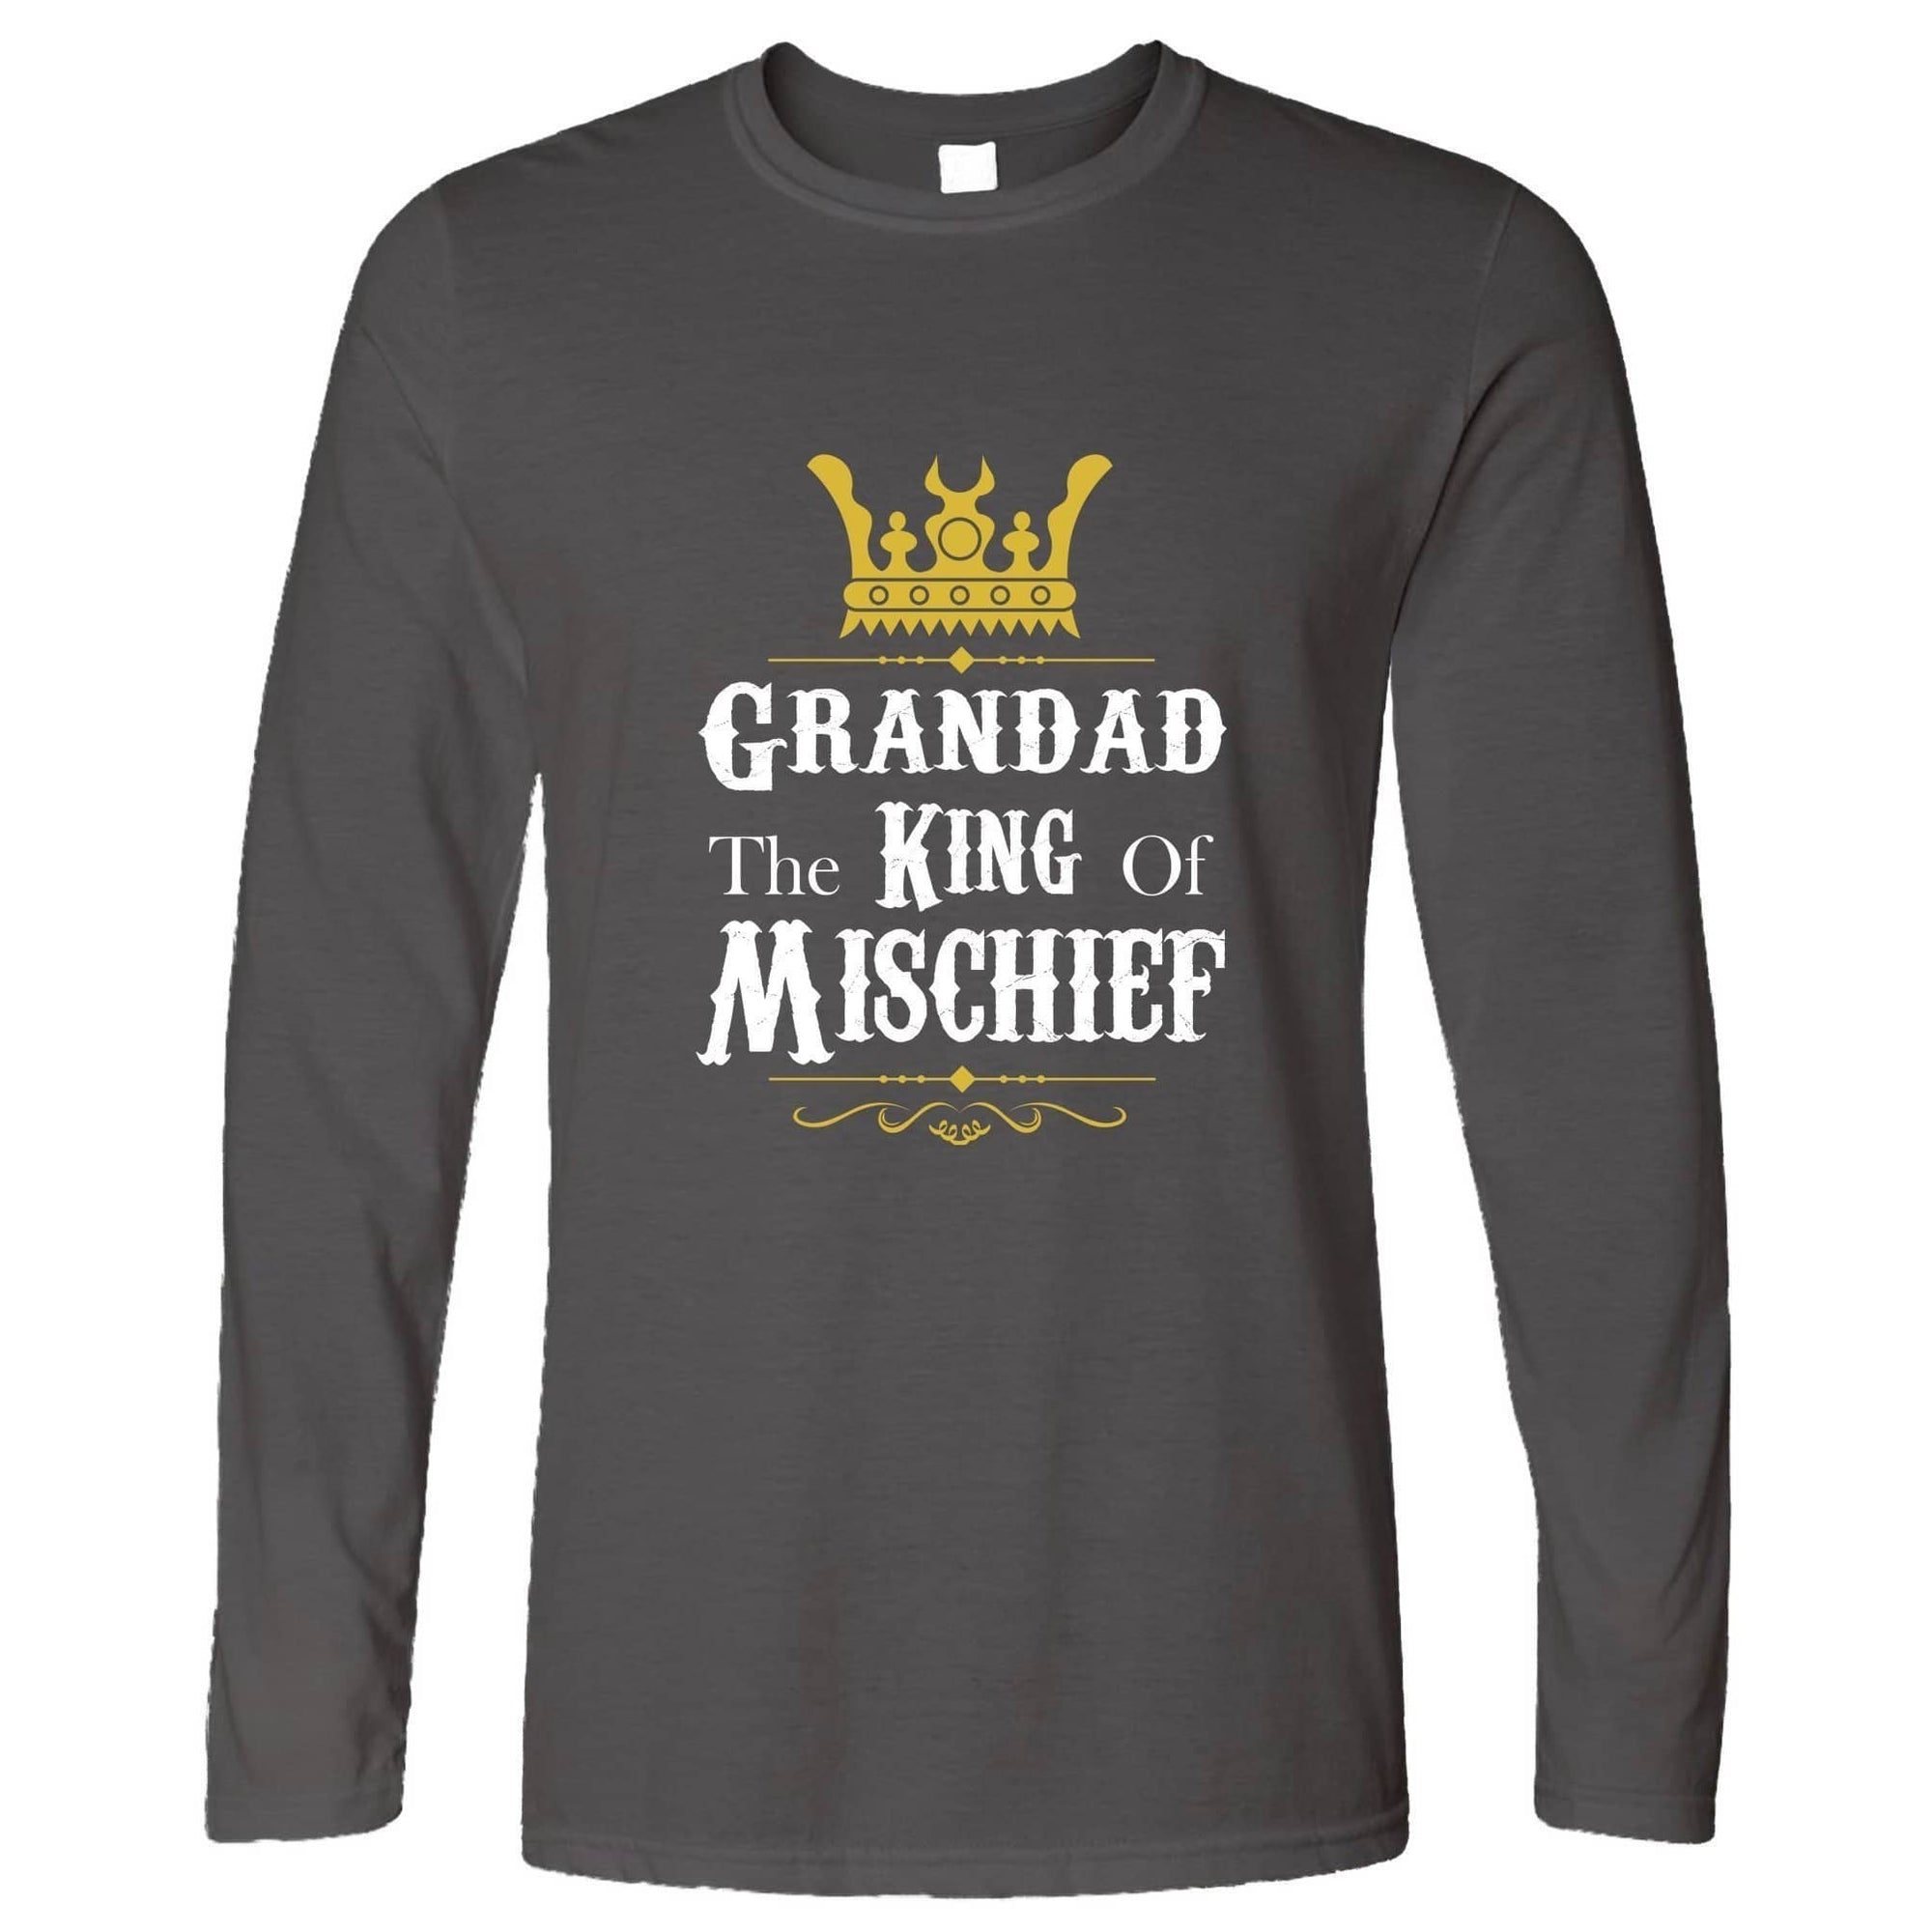 Father's Day Long Sleeve Grandad, The King Of Mischief T-Shirt